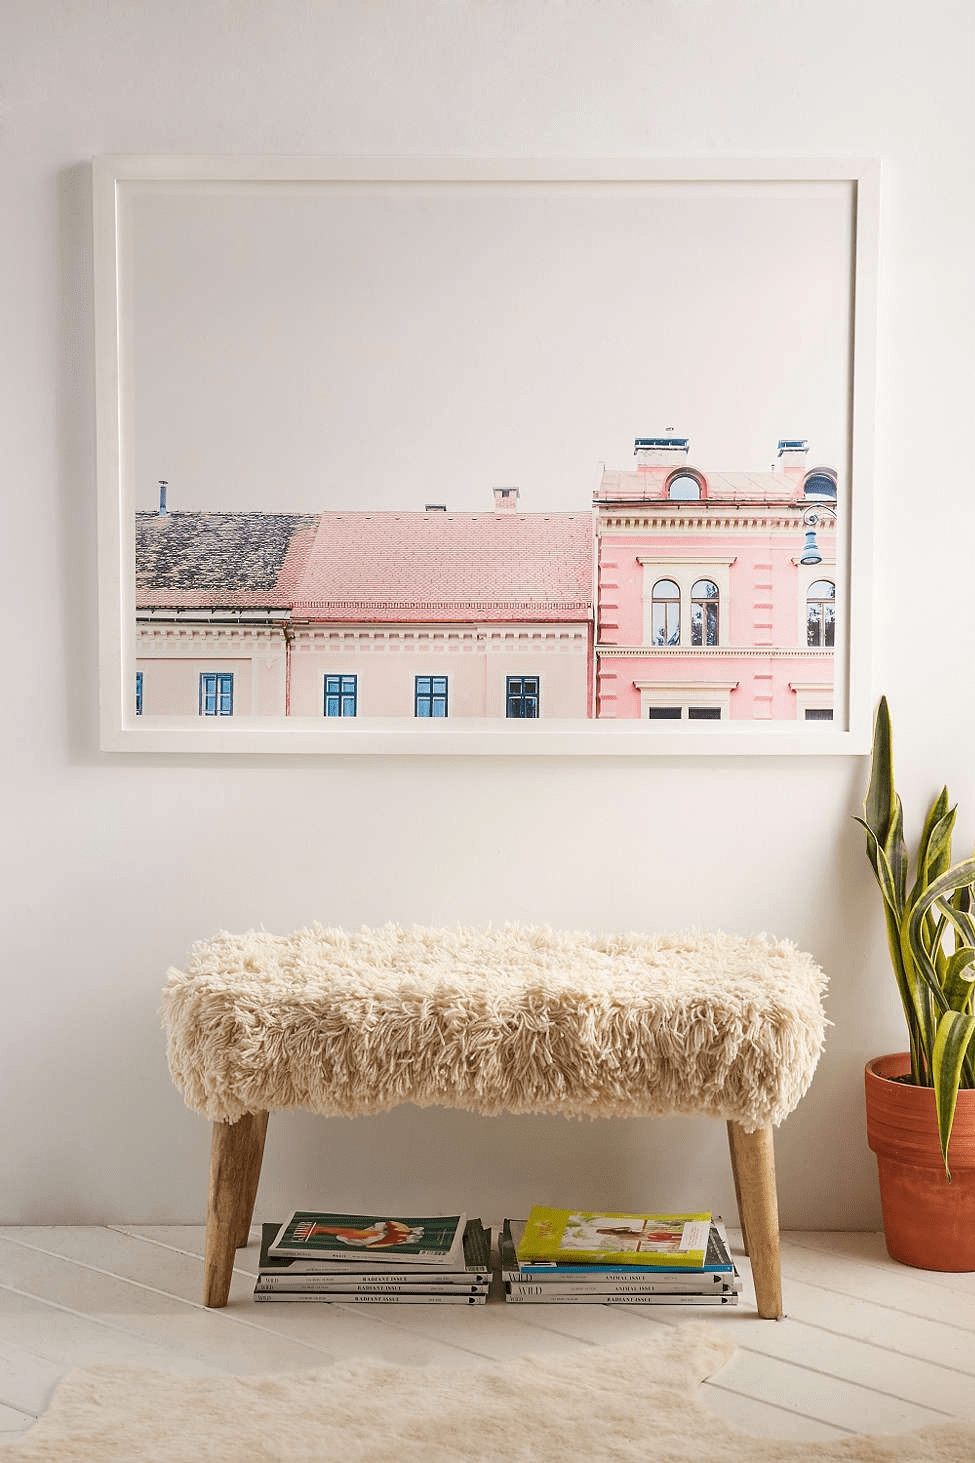 Wall Art From Urban Outfitters | Glitter Magazine With Newest Urban Outfitters Wall Art (Gallery 11 of 20)